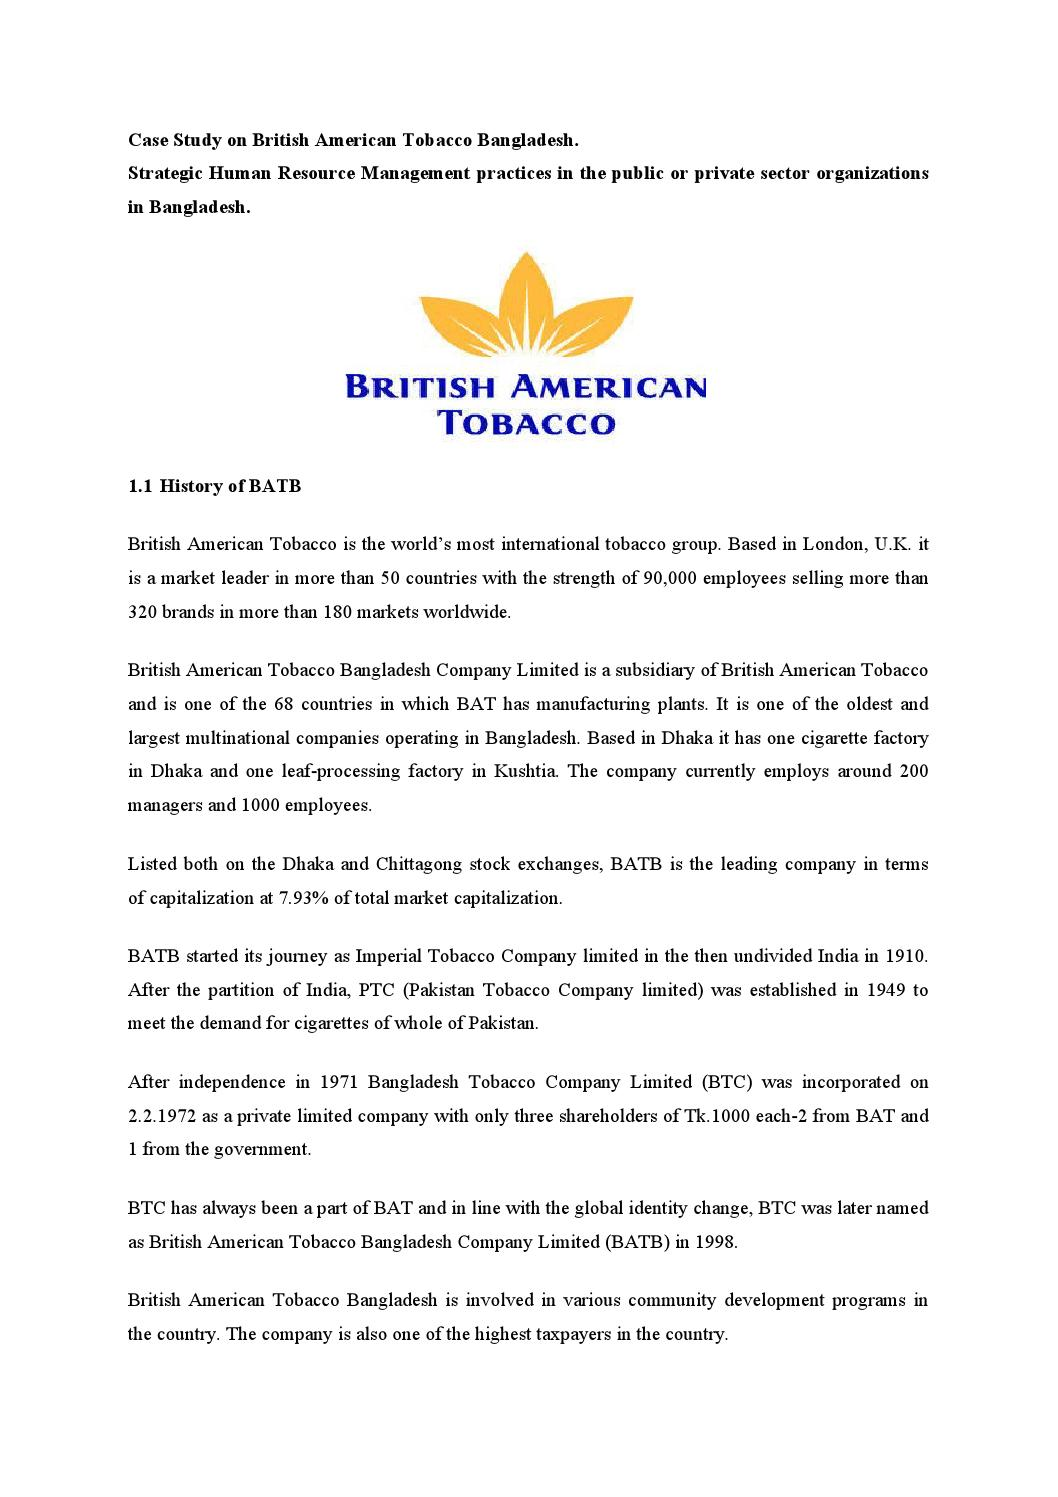 Case Study On British American Tobacco Bangladesh By Md